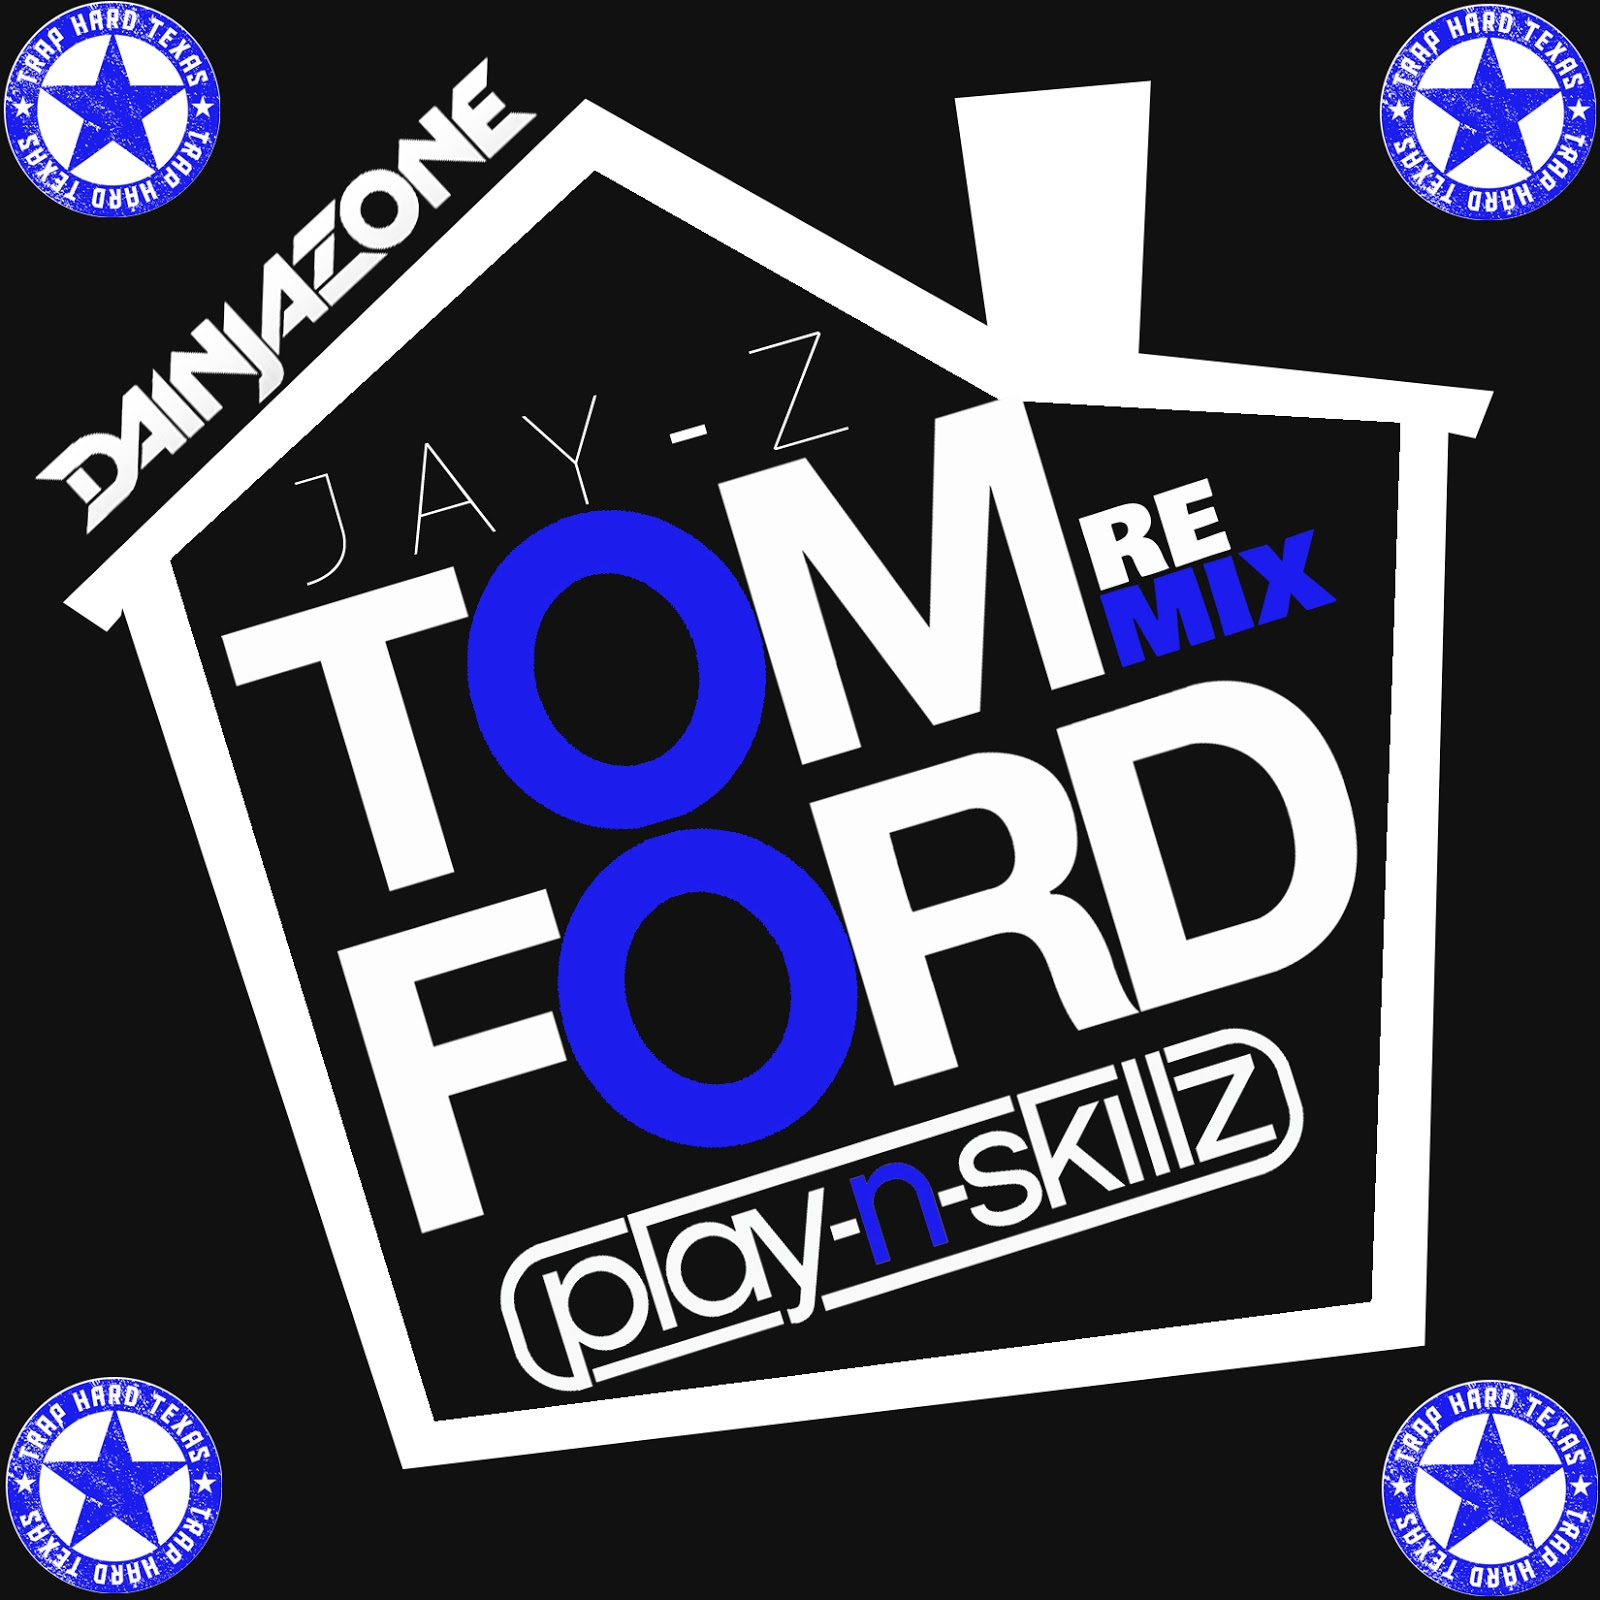 Djcity Exclusive Jay Z Tom Ford Play N Skillz Trap Remix